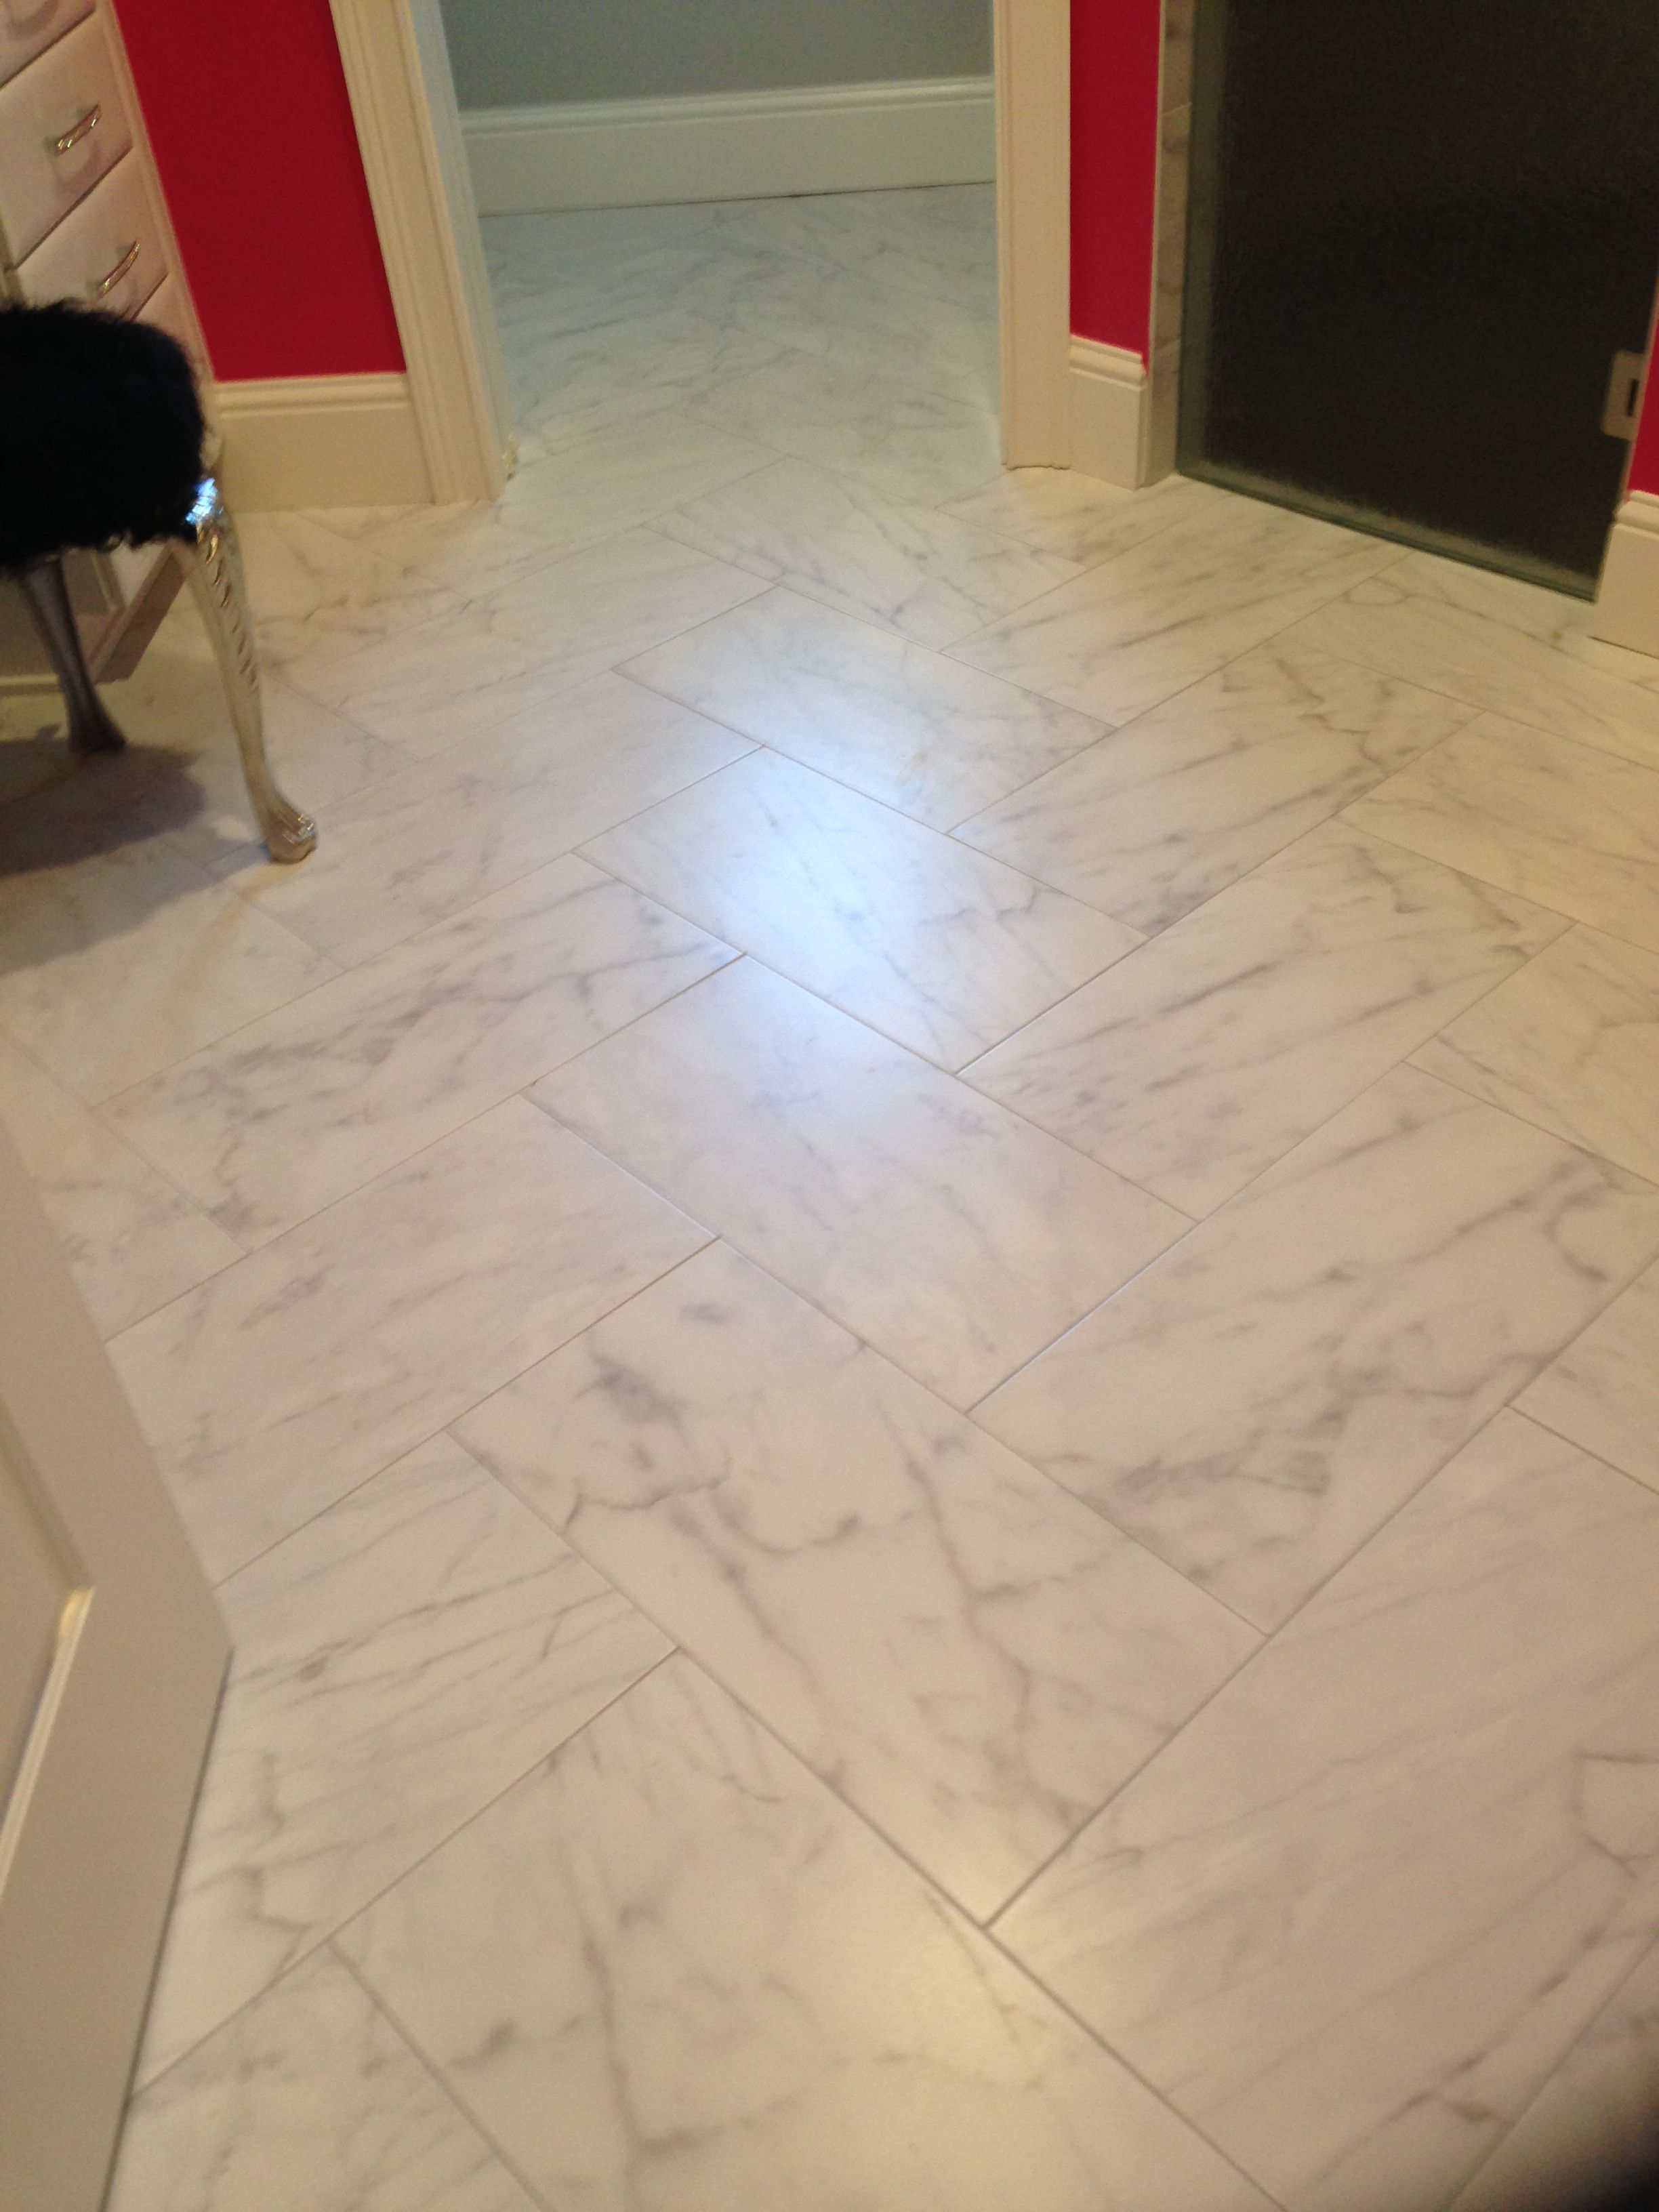 12 X 24 Carrara Look Porcelain Tile In Herringbone Pattern Herringbone Tile Floors Flooring Tile Floor